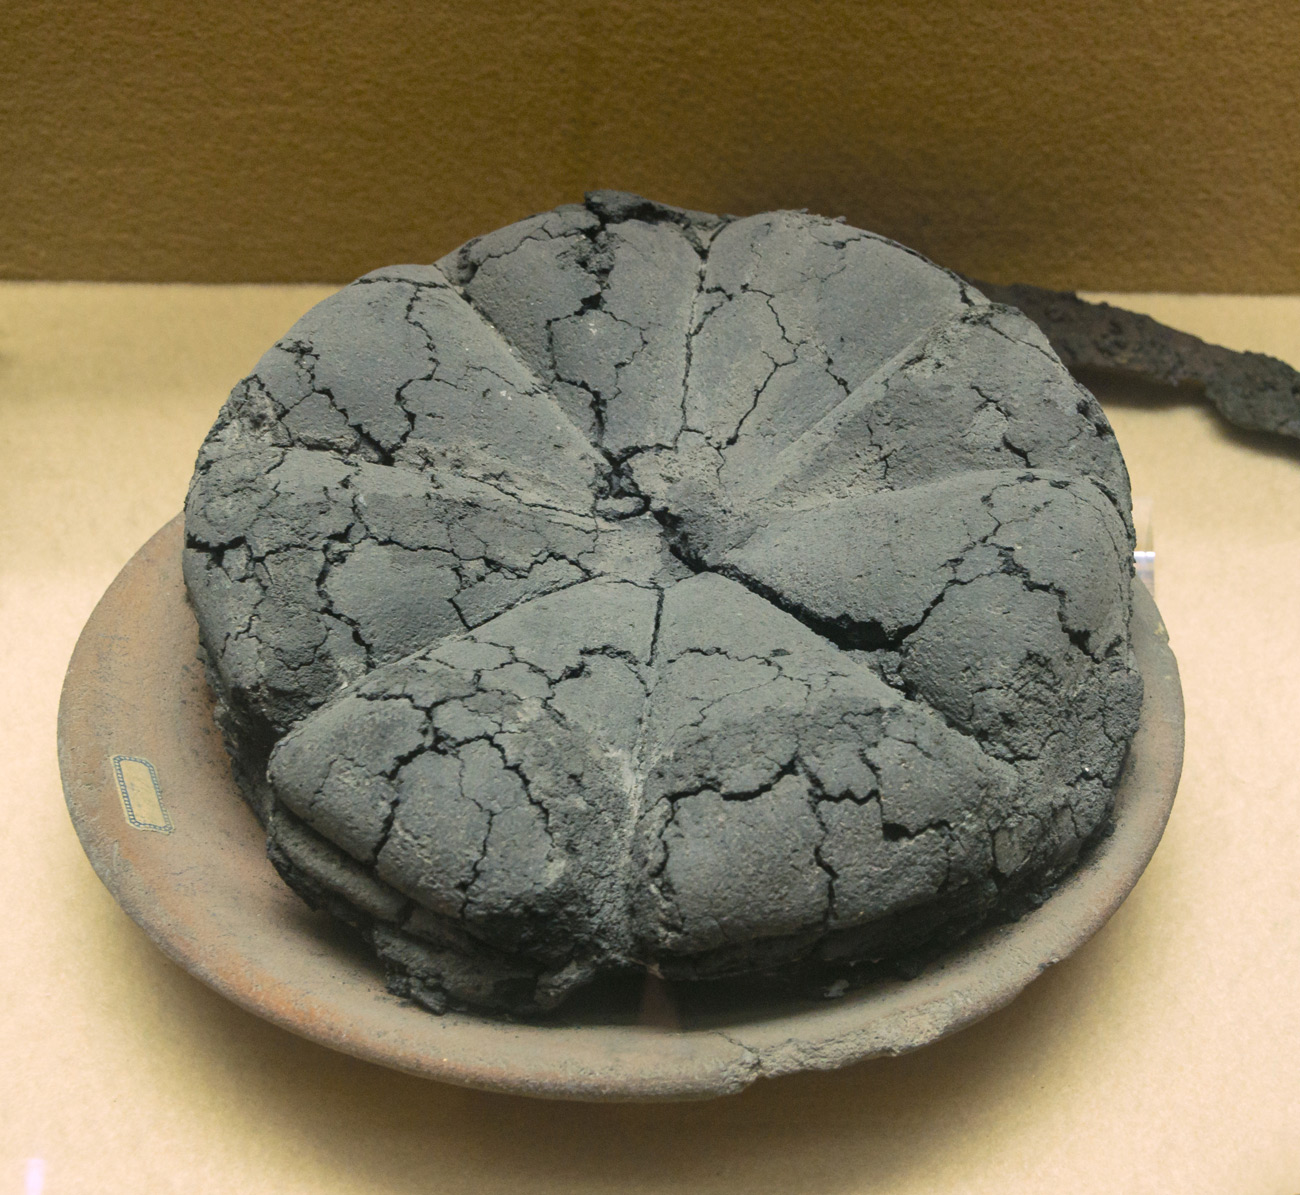 Round loaf of ancient carbonized bread.